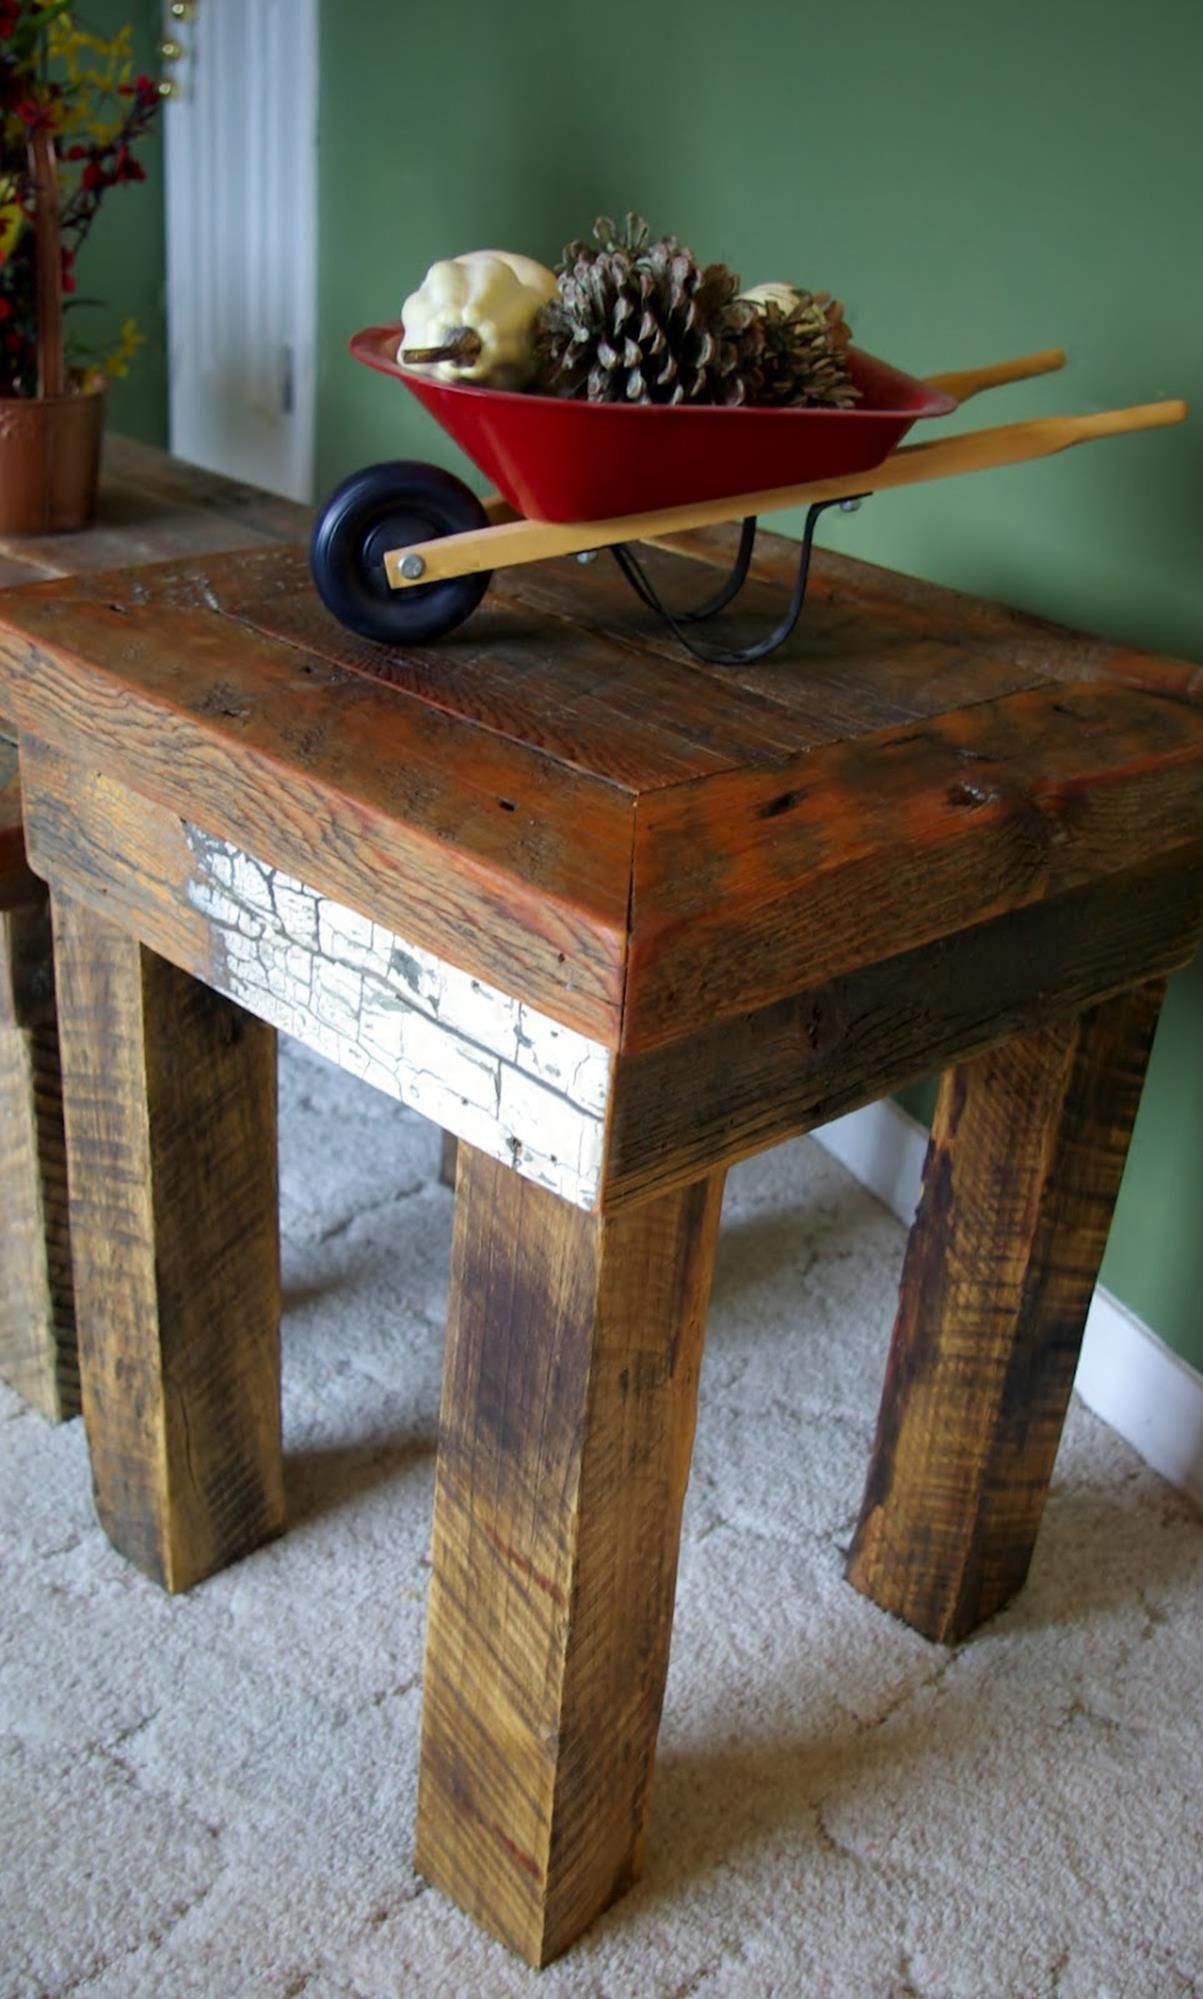 27 most popular rustic coffee table set ideas for 2020